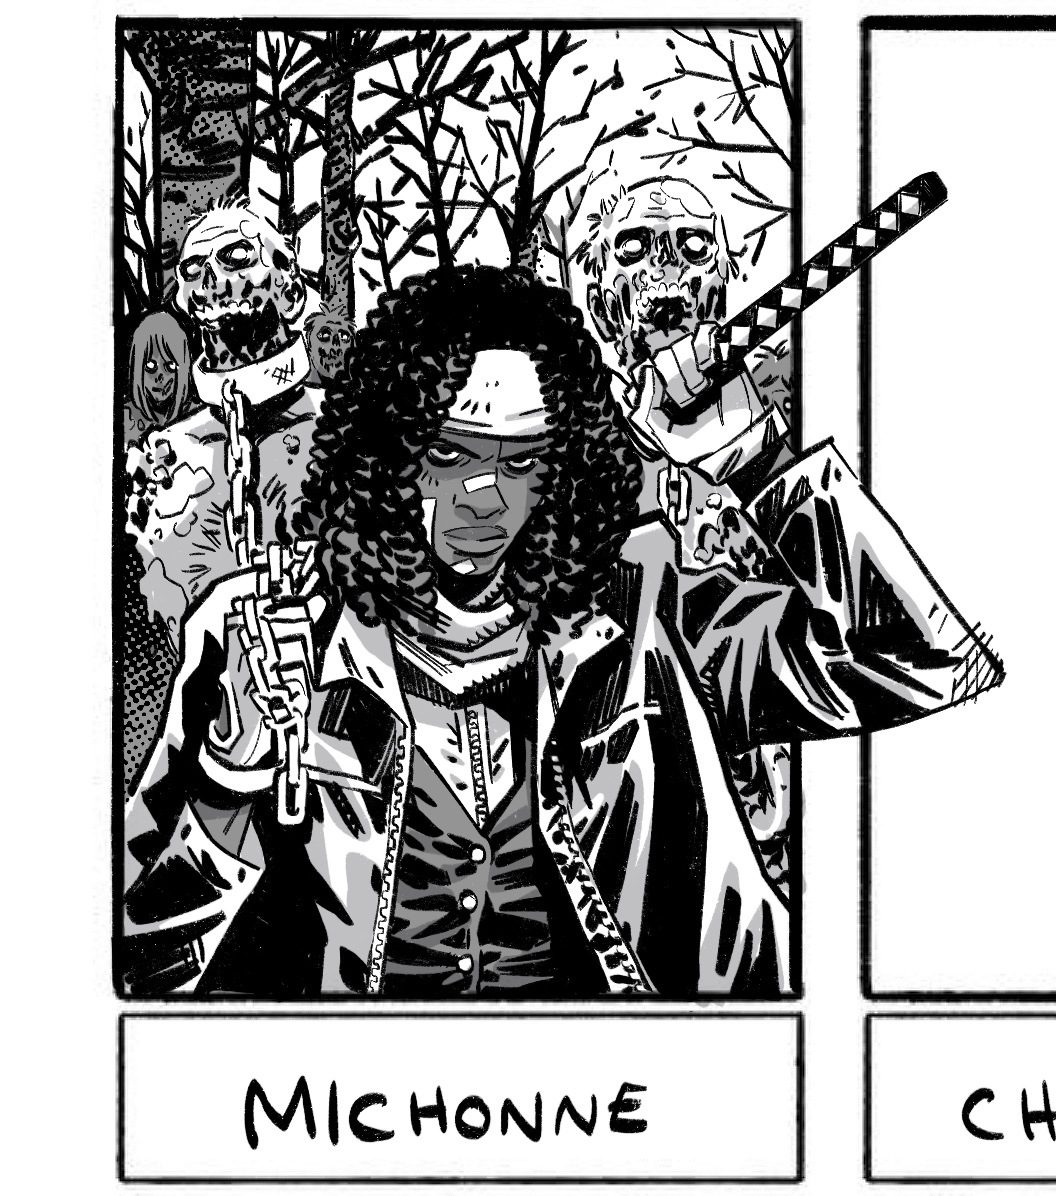 because ive given up on completing another 6 - heres Michonne & Sameen https://t.co/umnQdAkQRL